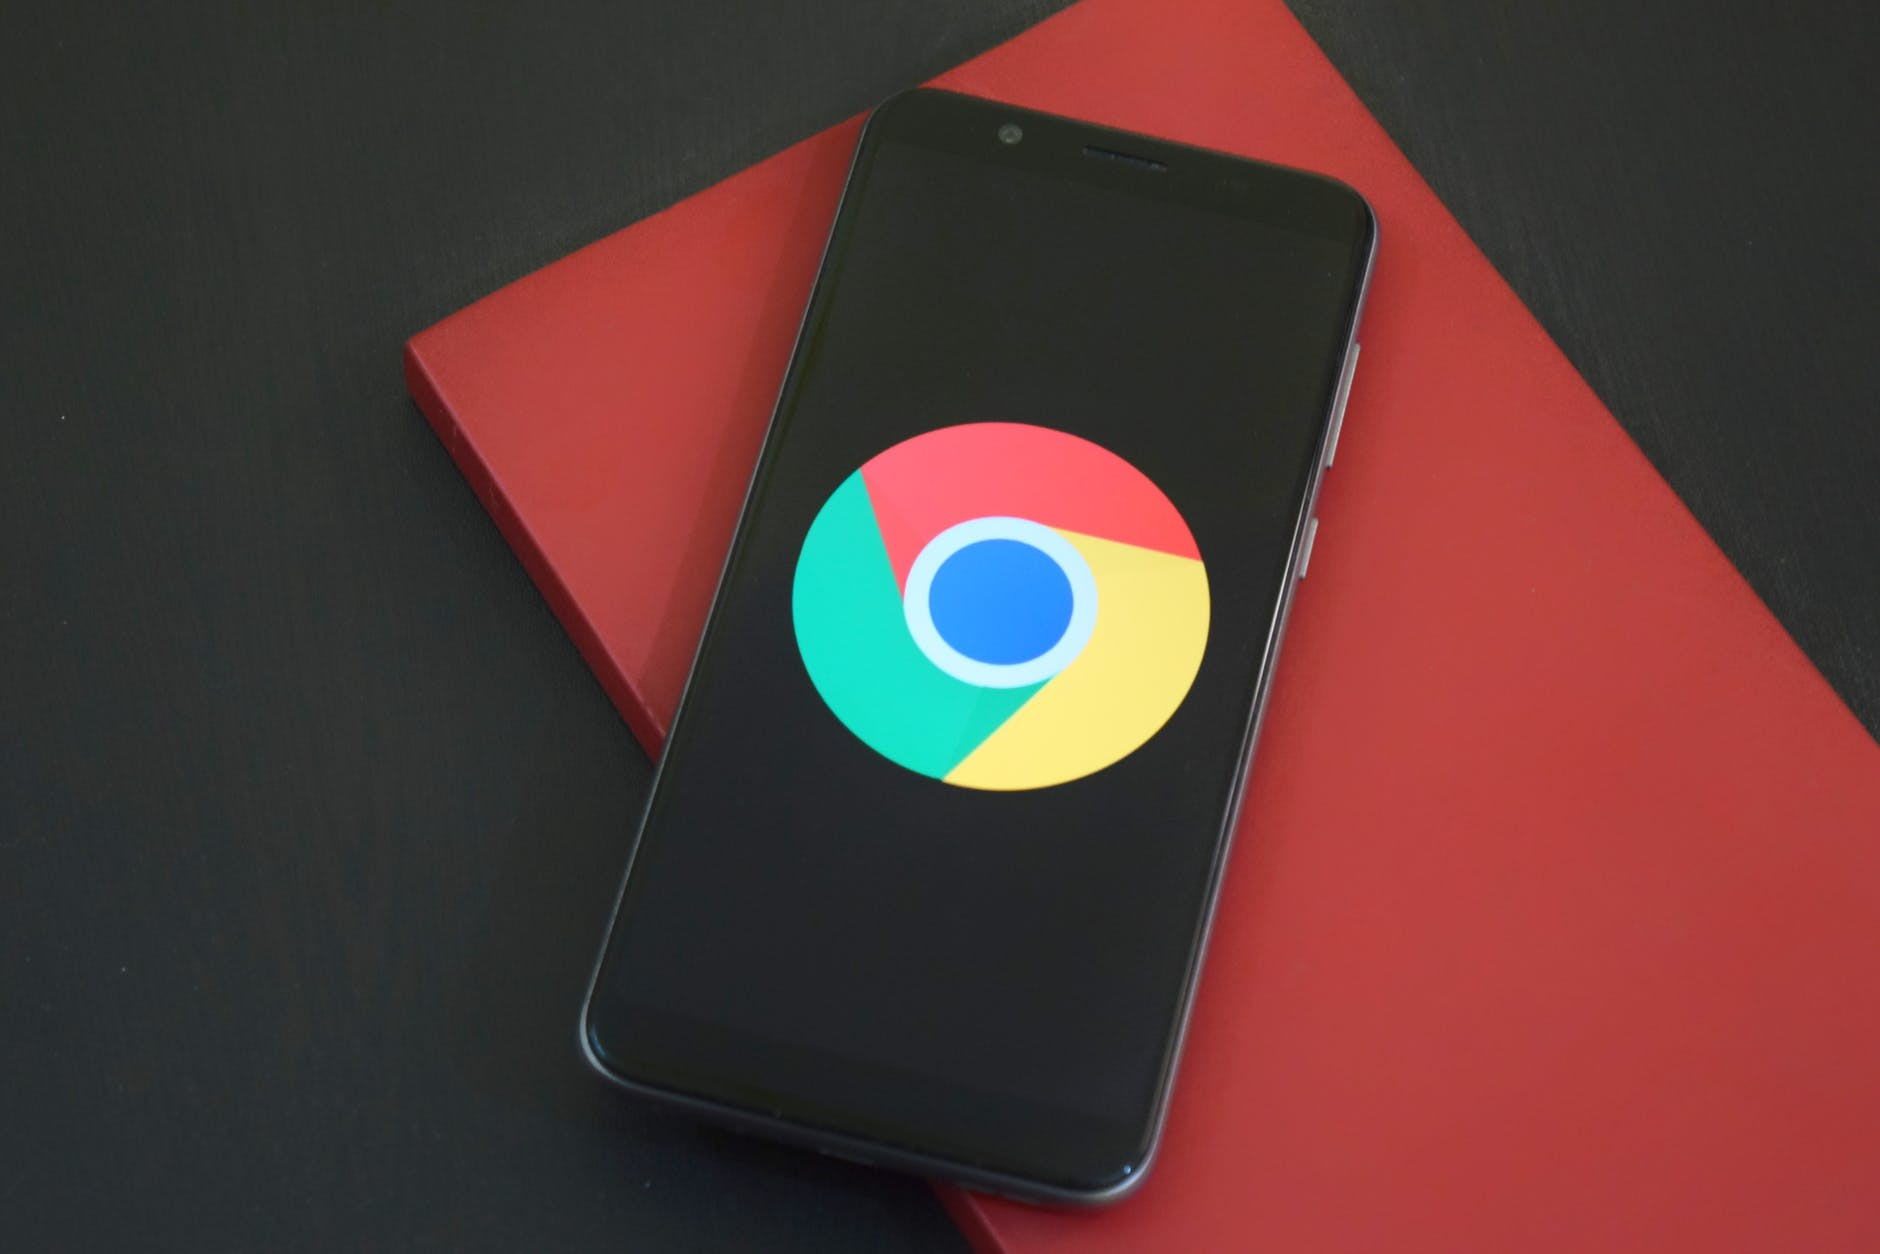 How To Turn Off Pop Up Blocker On Chrome